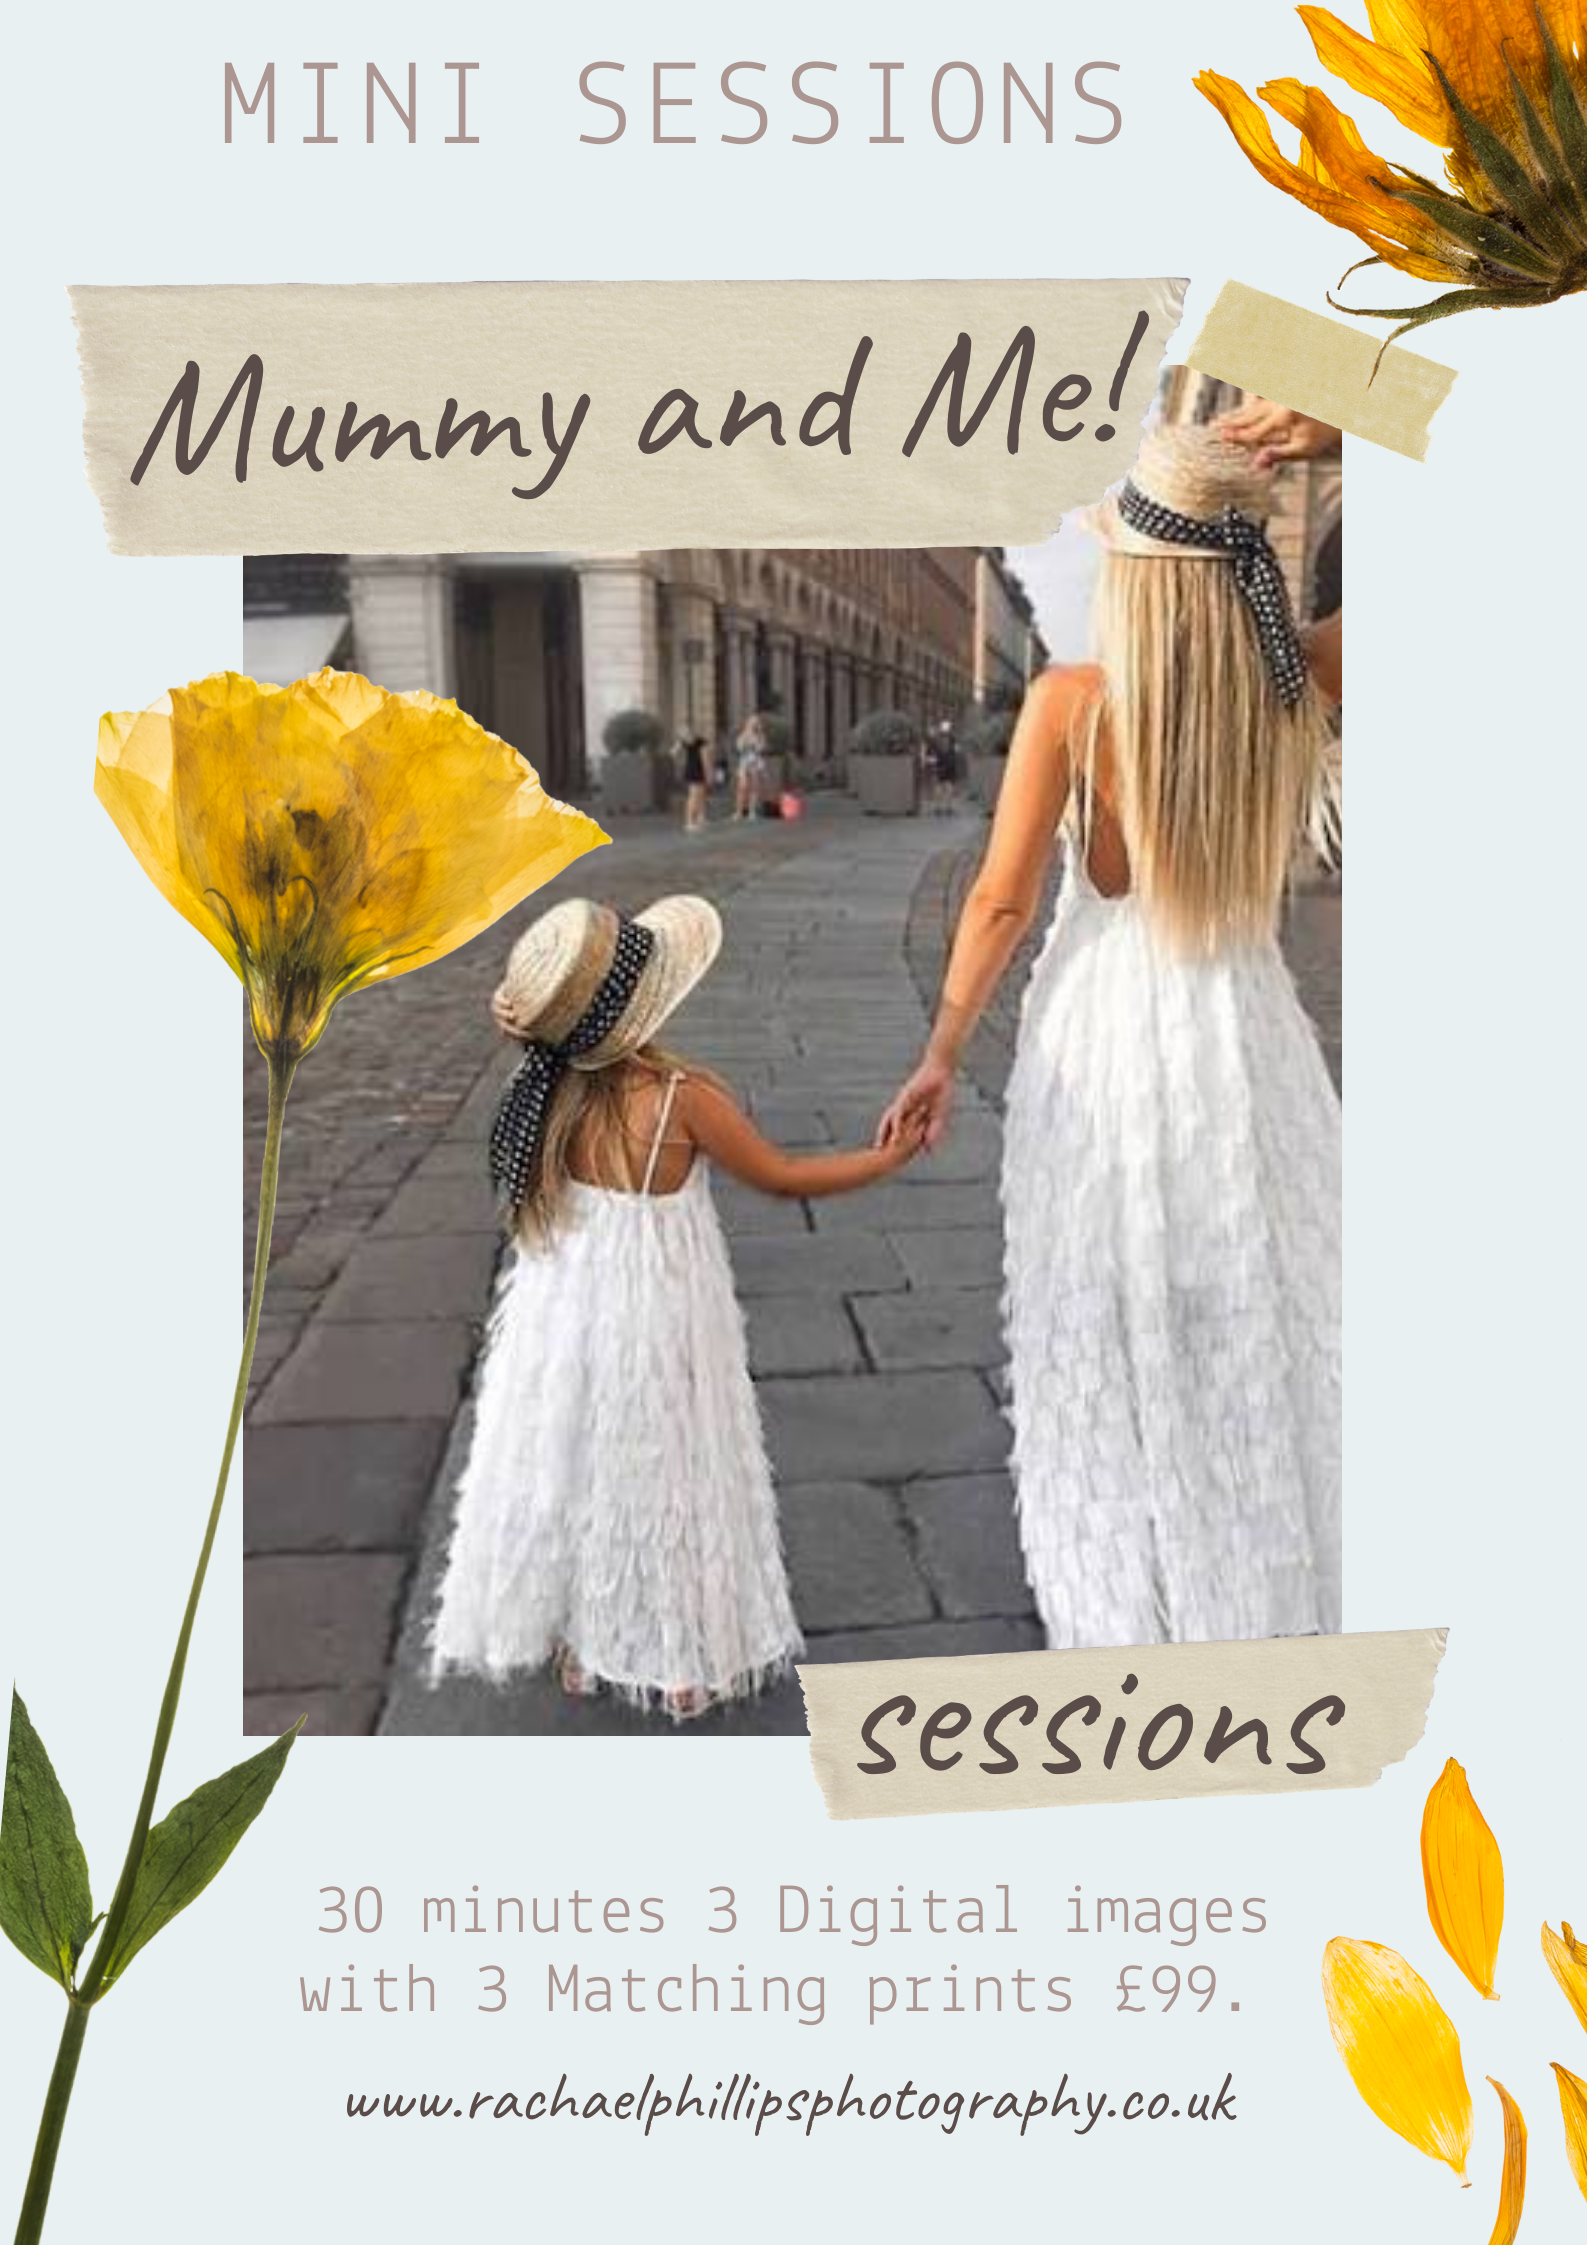 mummy and me mini sessions at rachael phillips photography studio in mansfield, nottingham